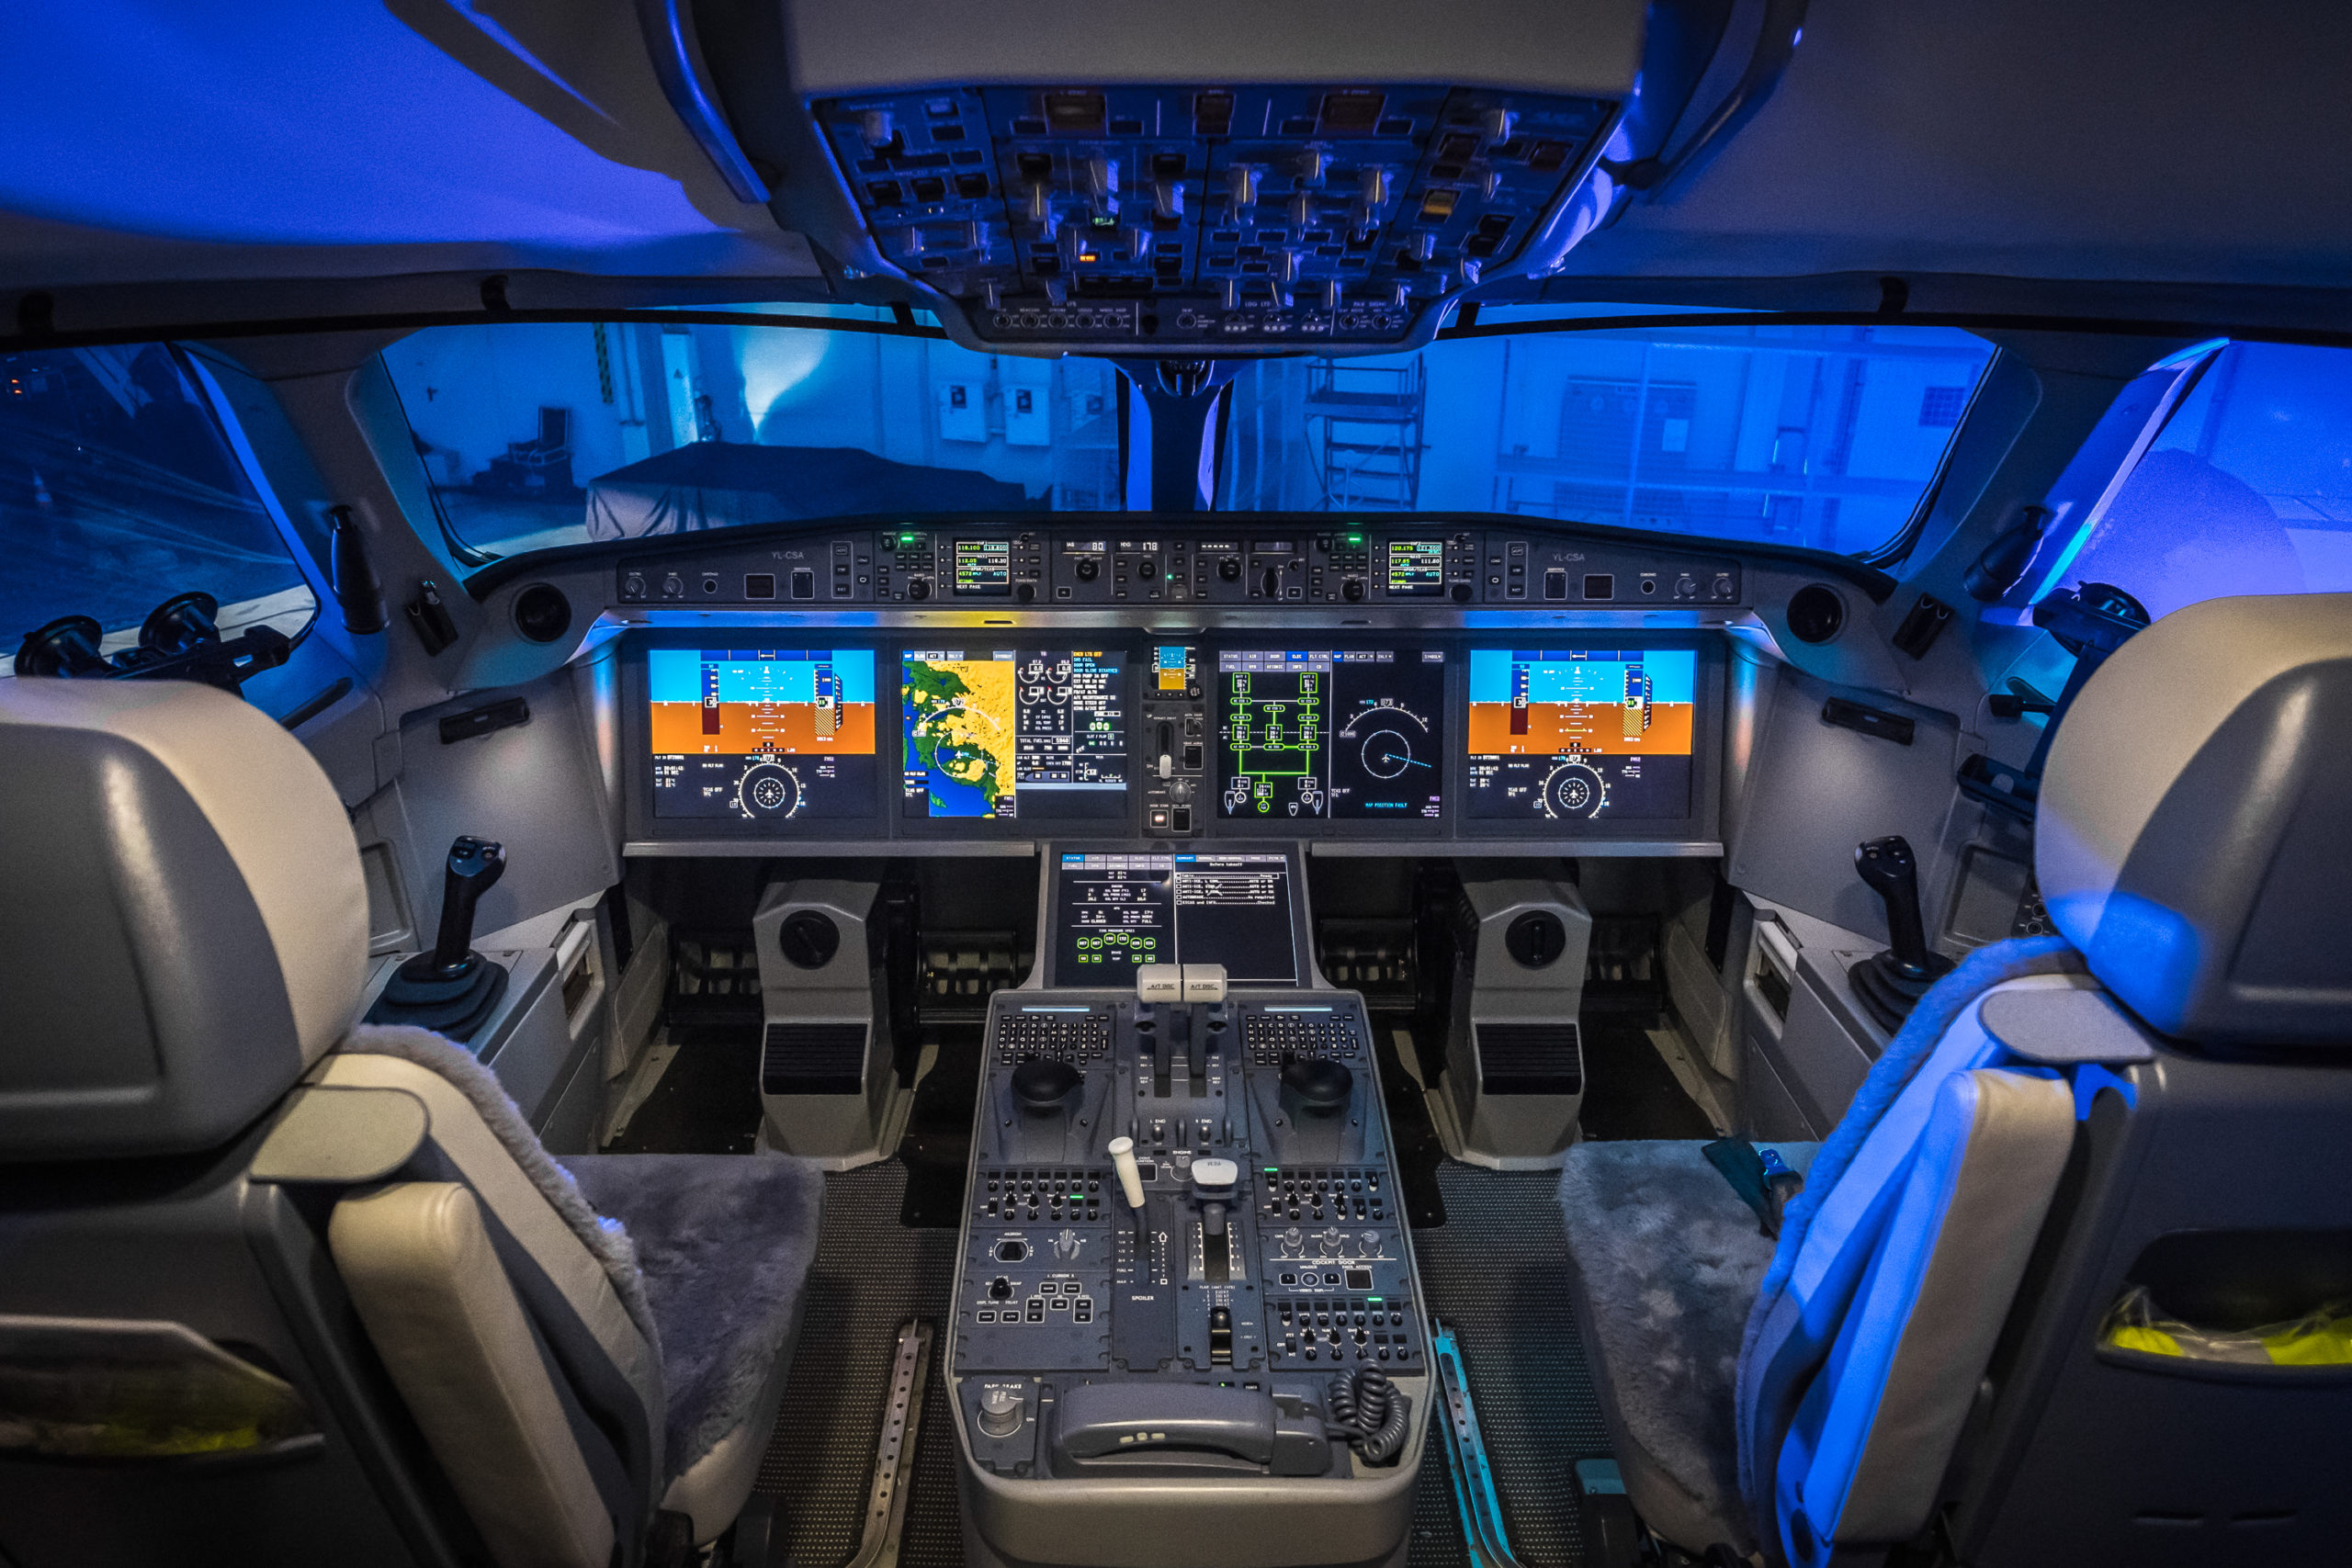 Air Baltic S Bombardier Cs300 Cockpit Featuring Side Stick